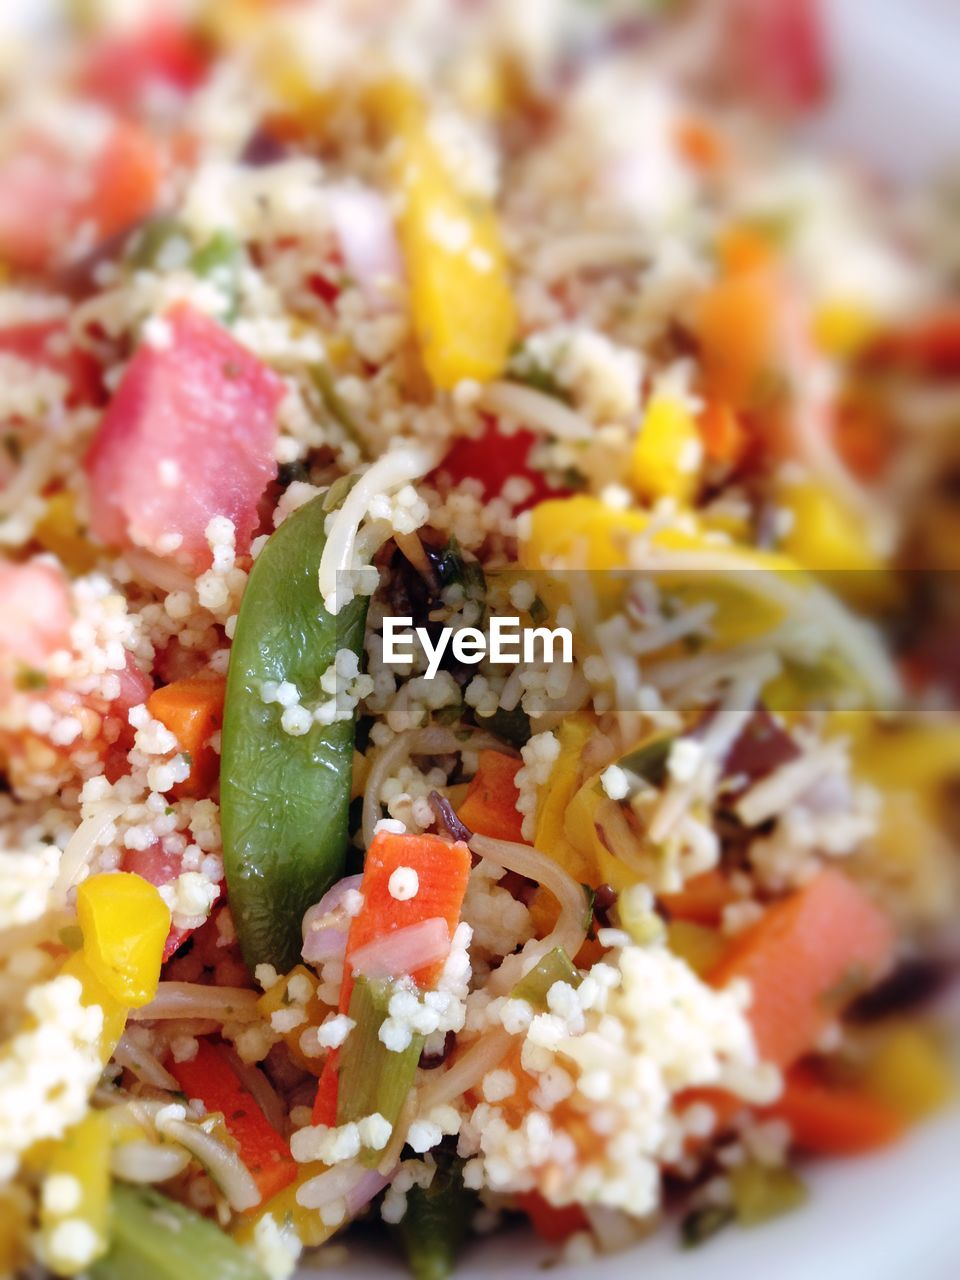 food and drink, food, ready-to-eat, plate, no people, close-up, freshness, rice - food staple, salad, mexican food, healthy eating, vegetable, full frame, indoors, fried rice, day